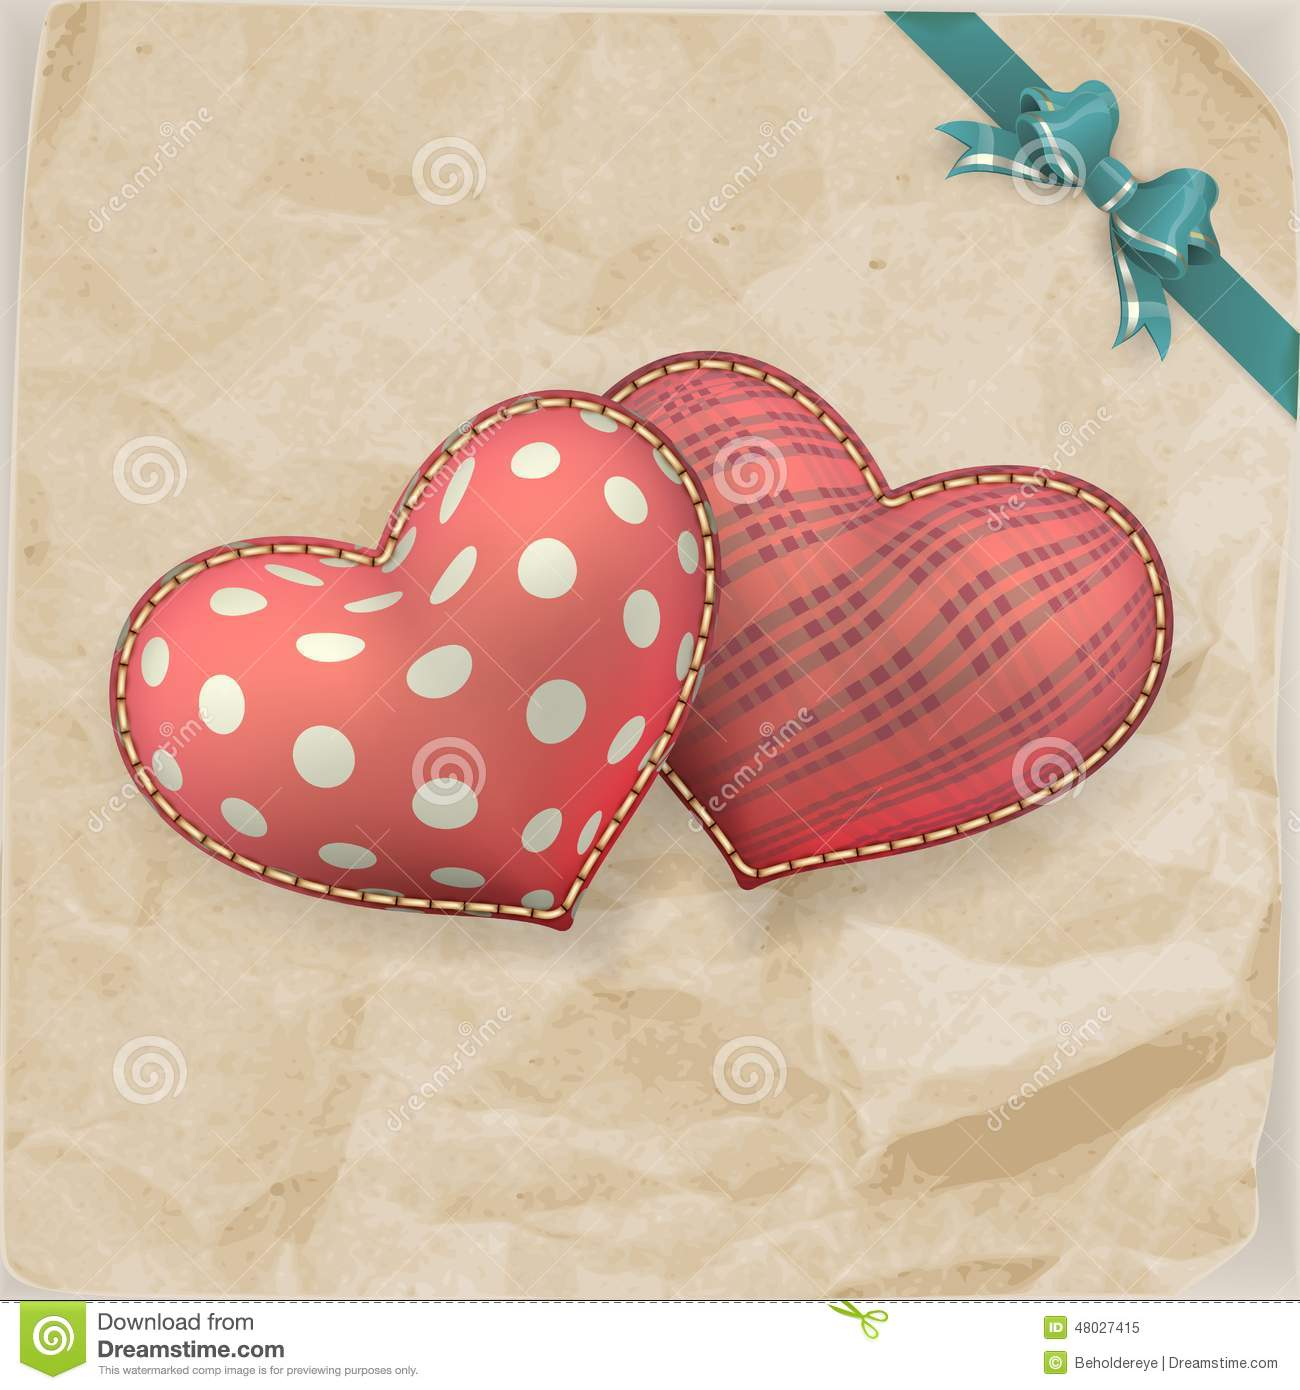 Valentine S Day Vintage Toys : Vintage handmaded valentines day toy eps stock vector